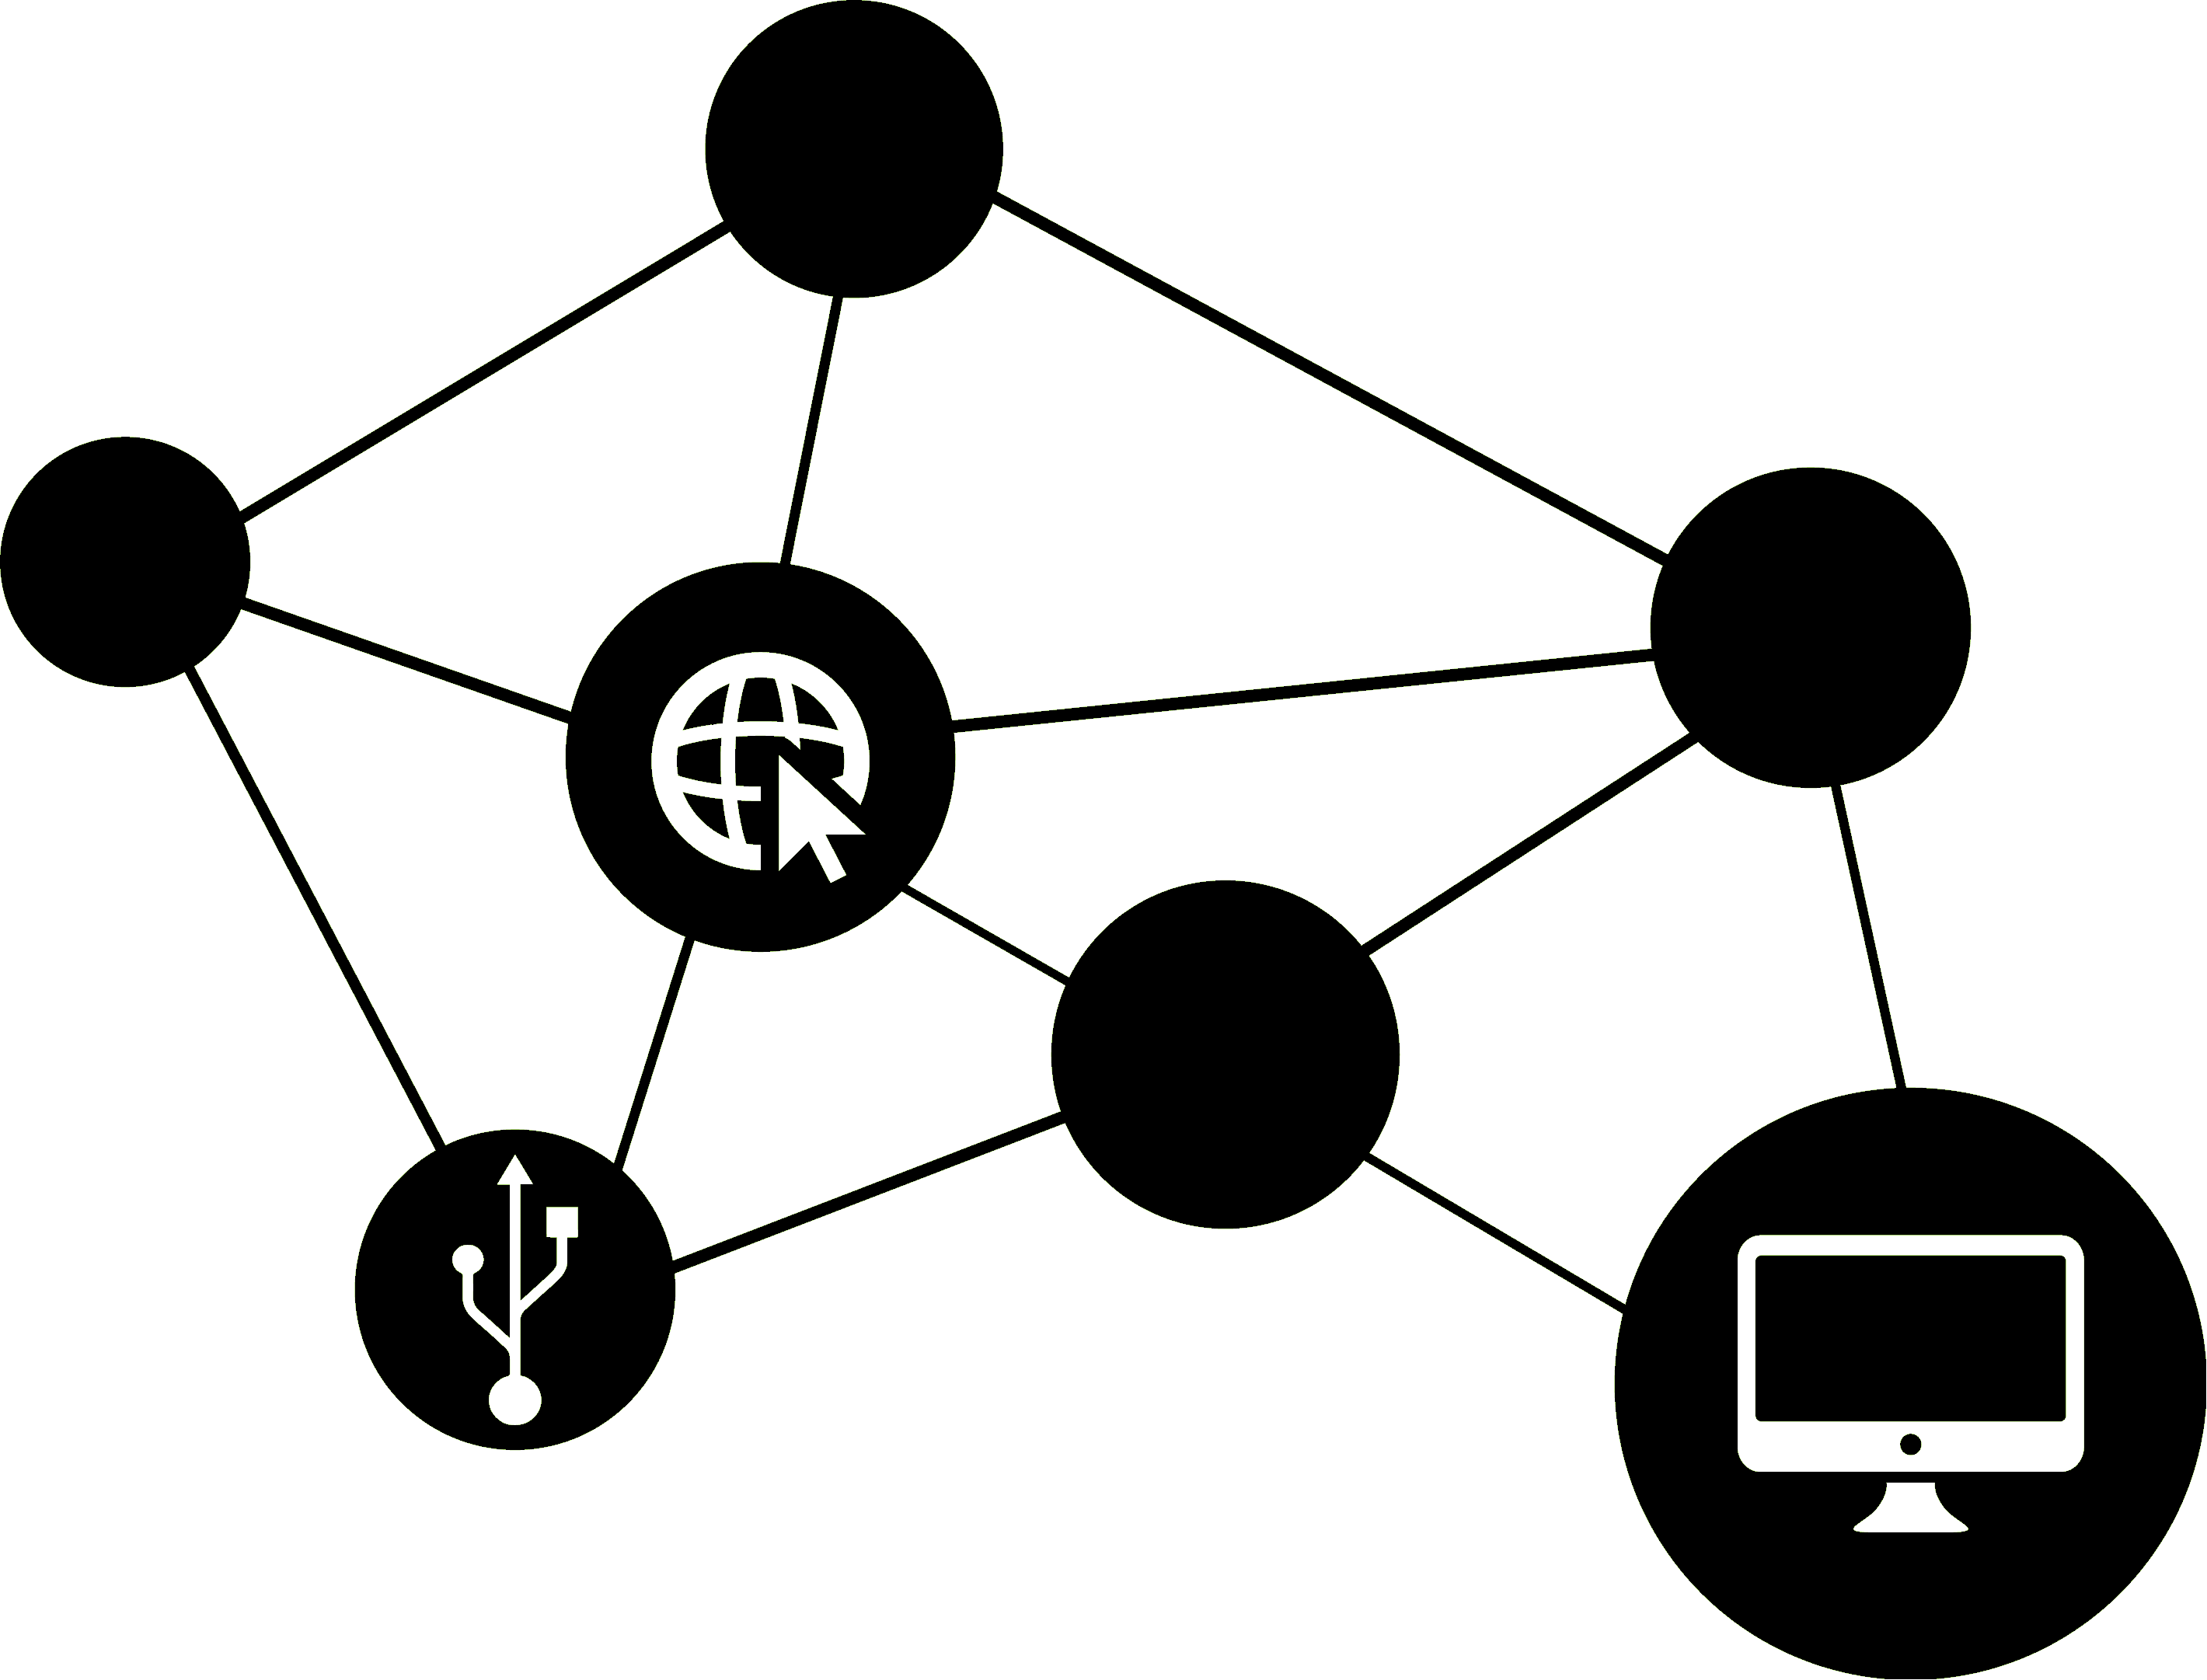 Network Clipart Networking Network Networking Transparent